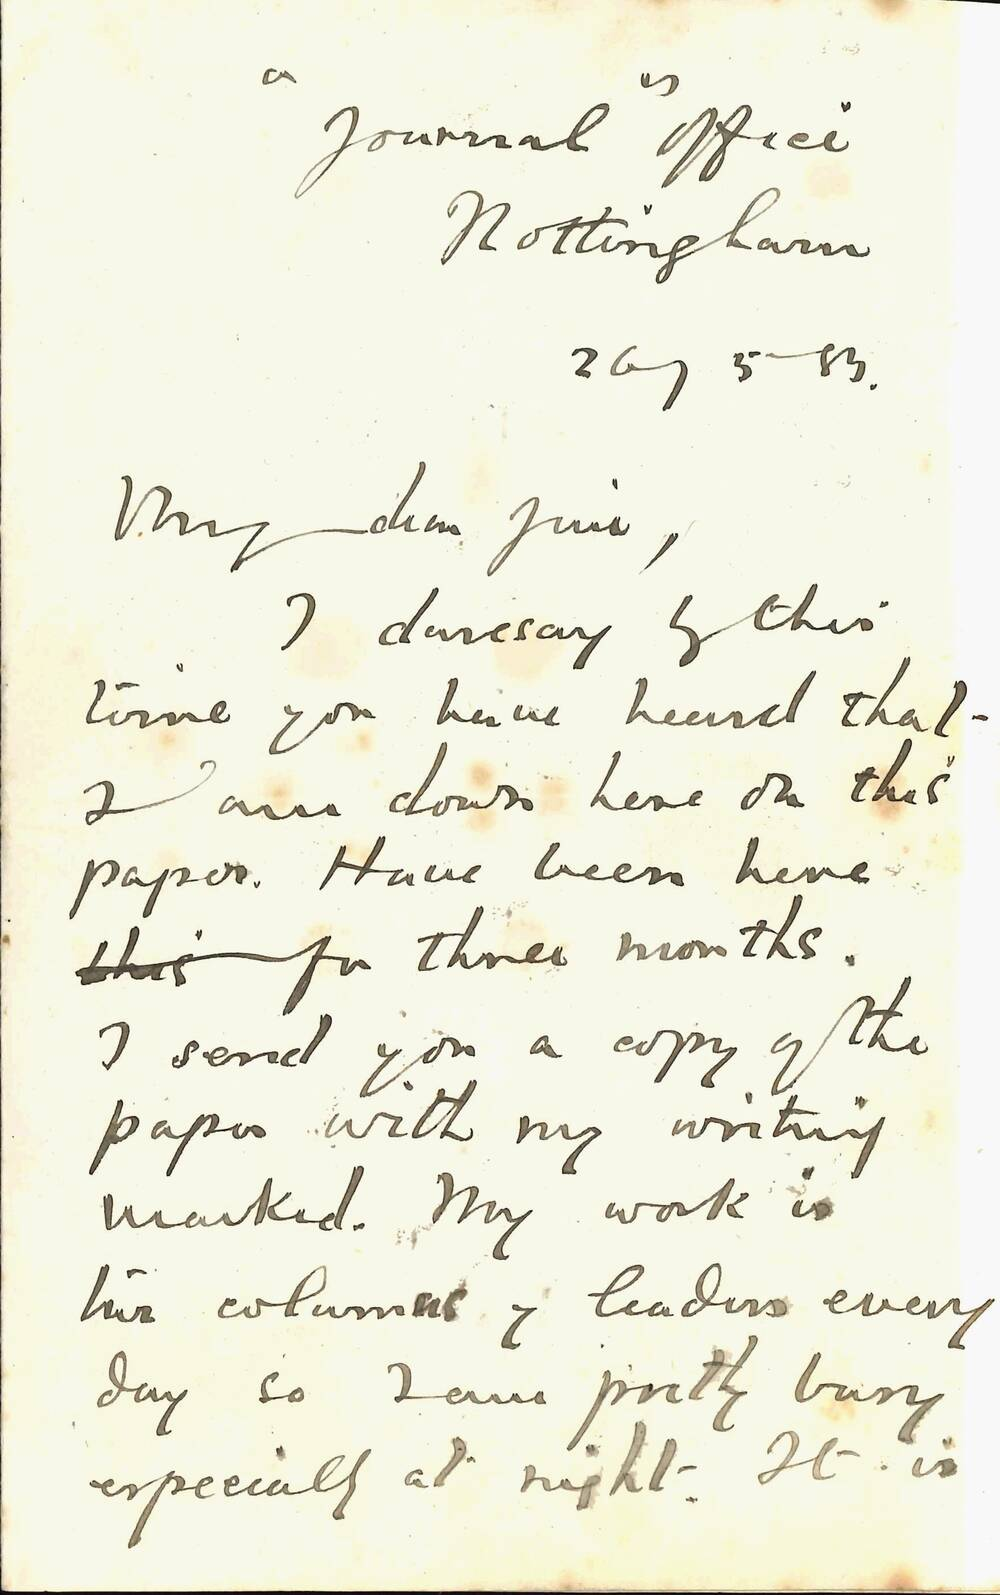 First page of a handwritten letter from 1883.